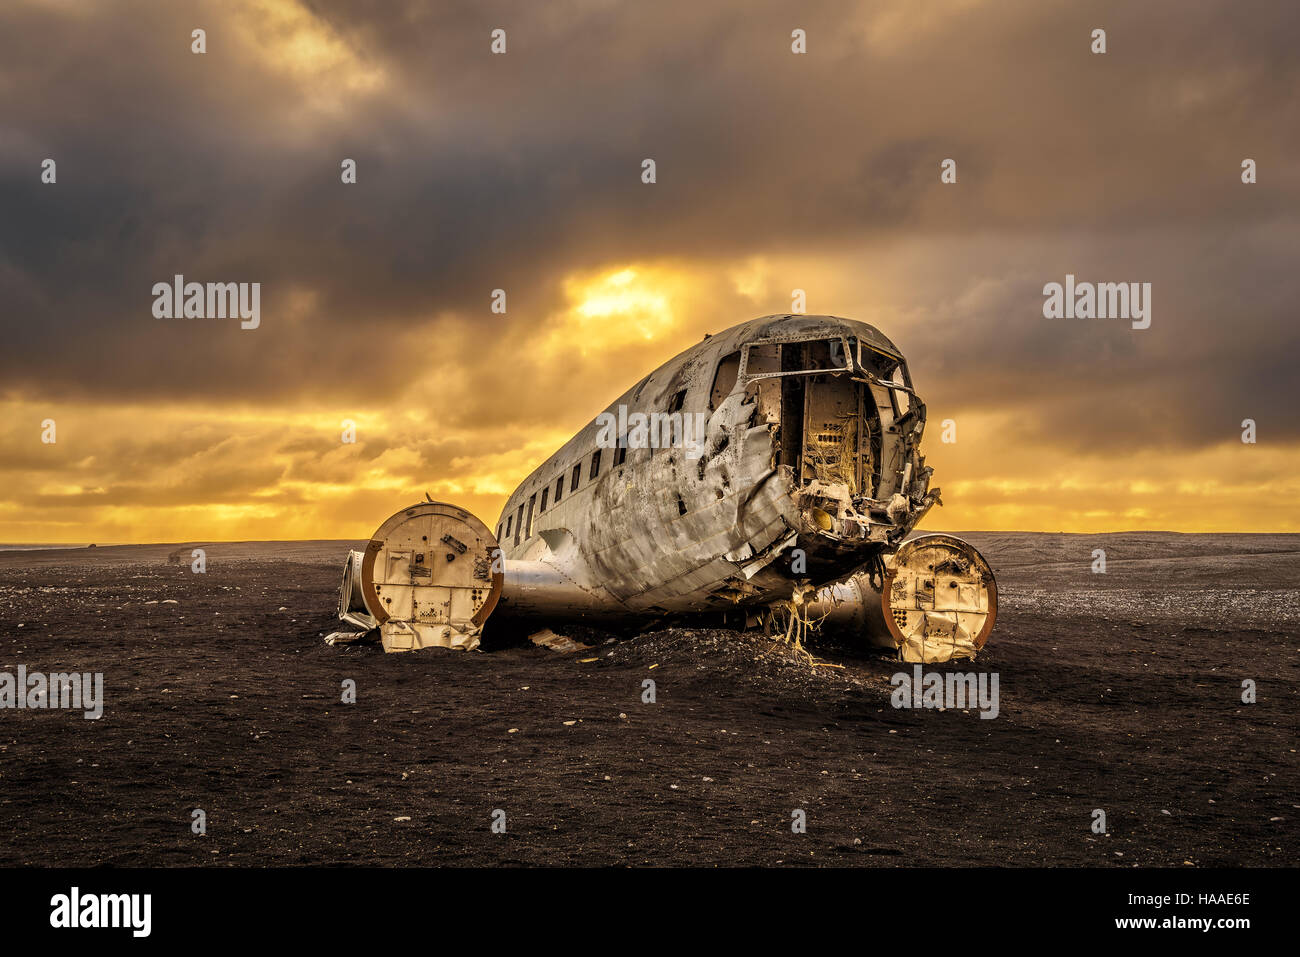 Old crashed plane abandoned on Solheimasandur beach near Vik in Iceland with heavy storm clouds in the sky. Hdr - Stock Image